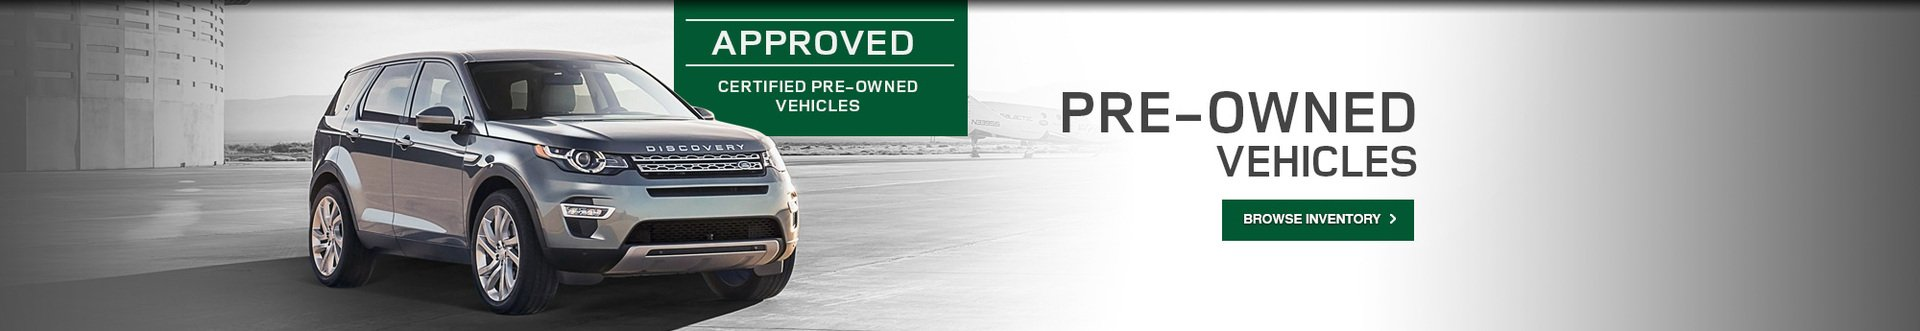 inventory drive range owned evoque suv four landrover pre wheel courtesy rover certified land vehicle preowned